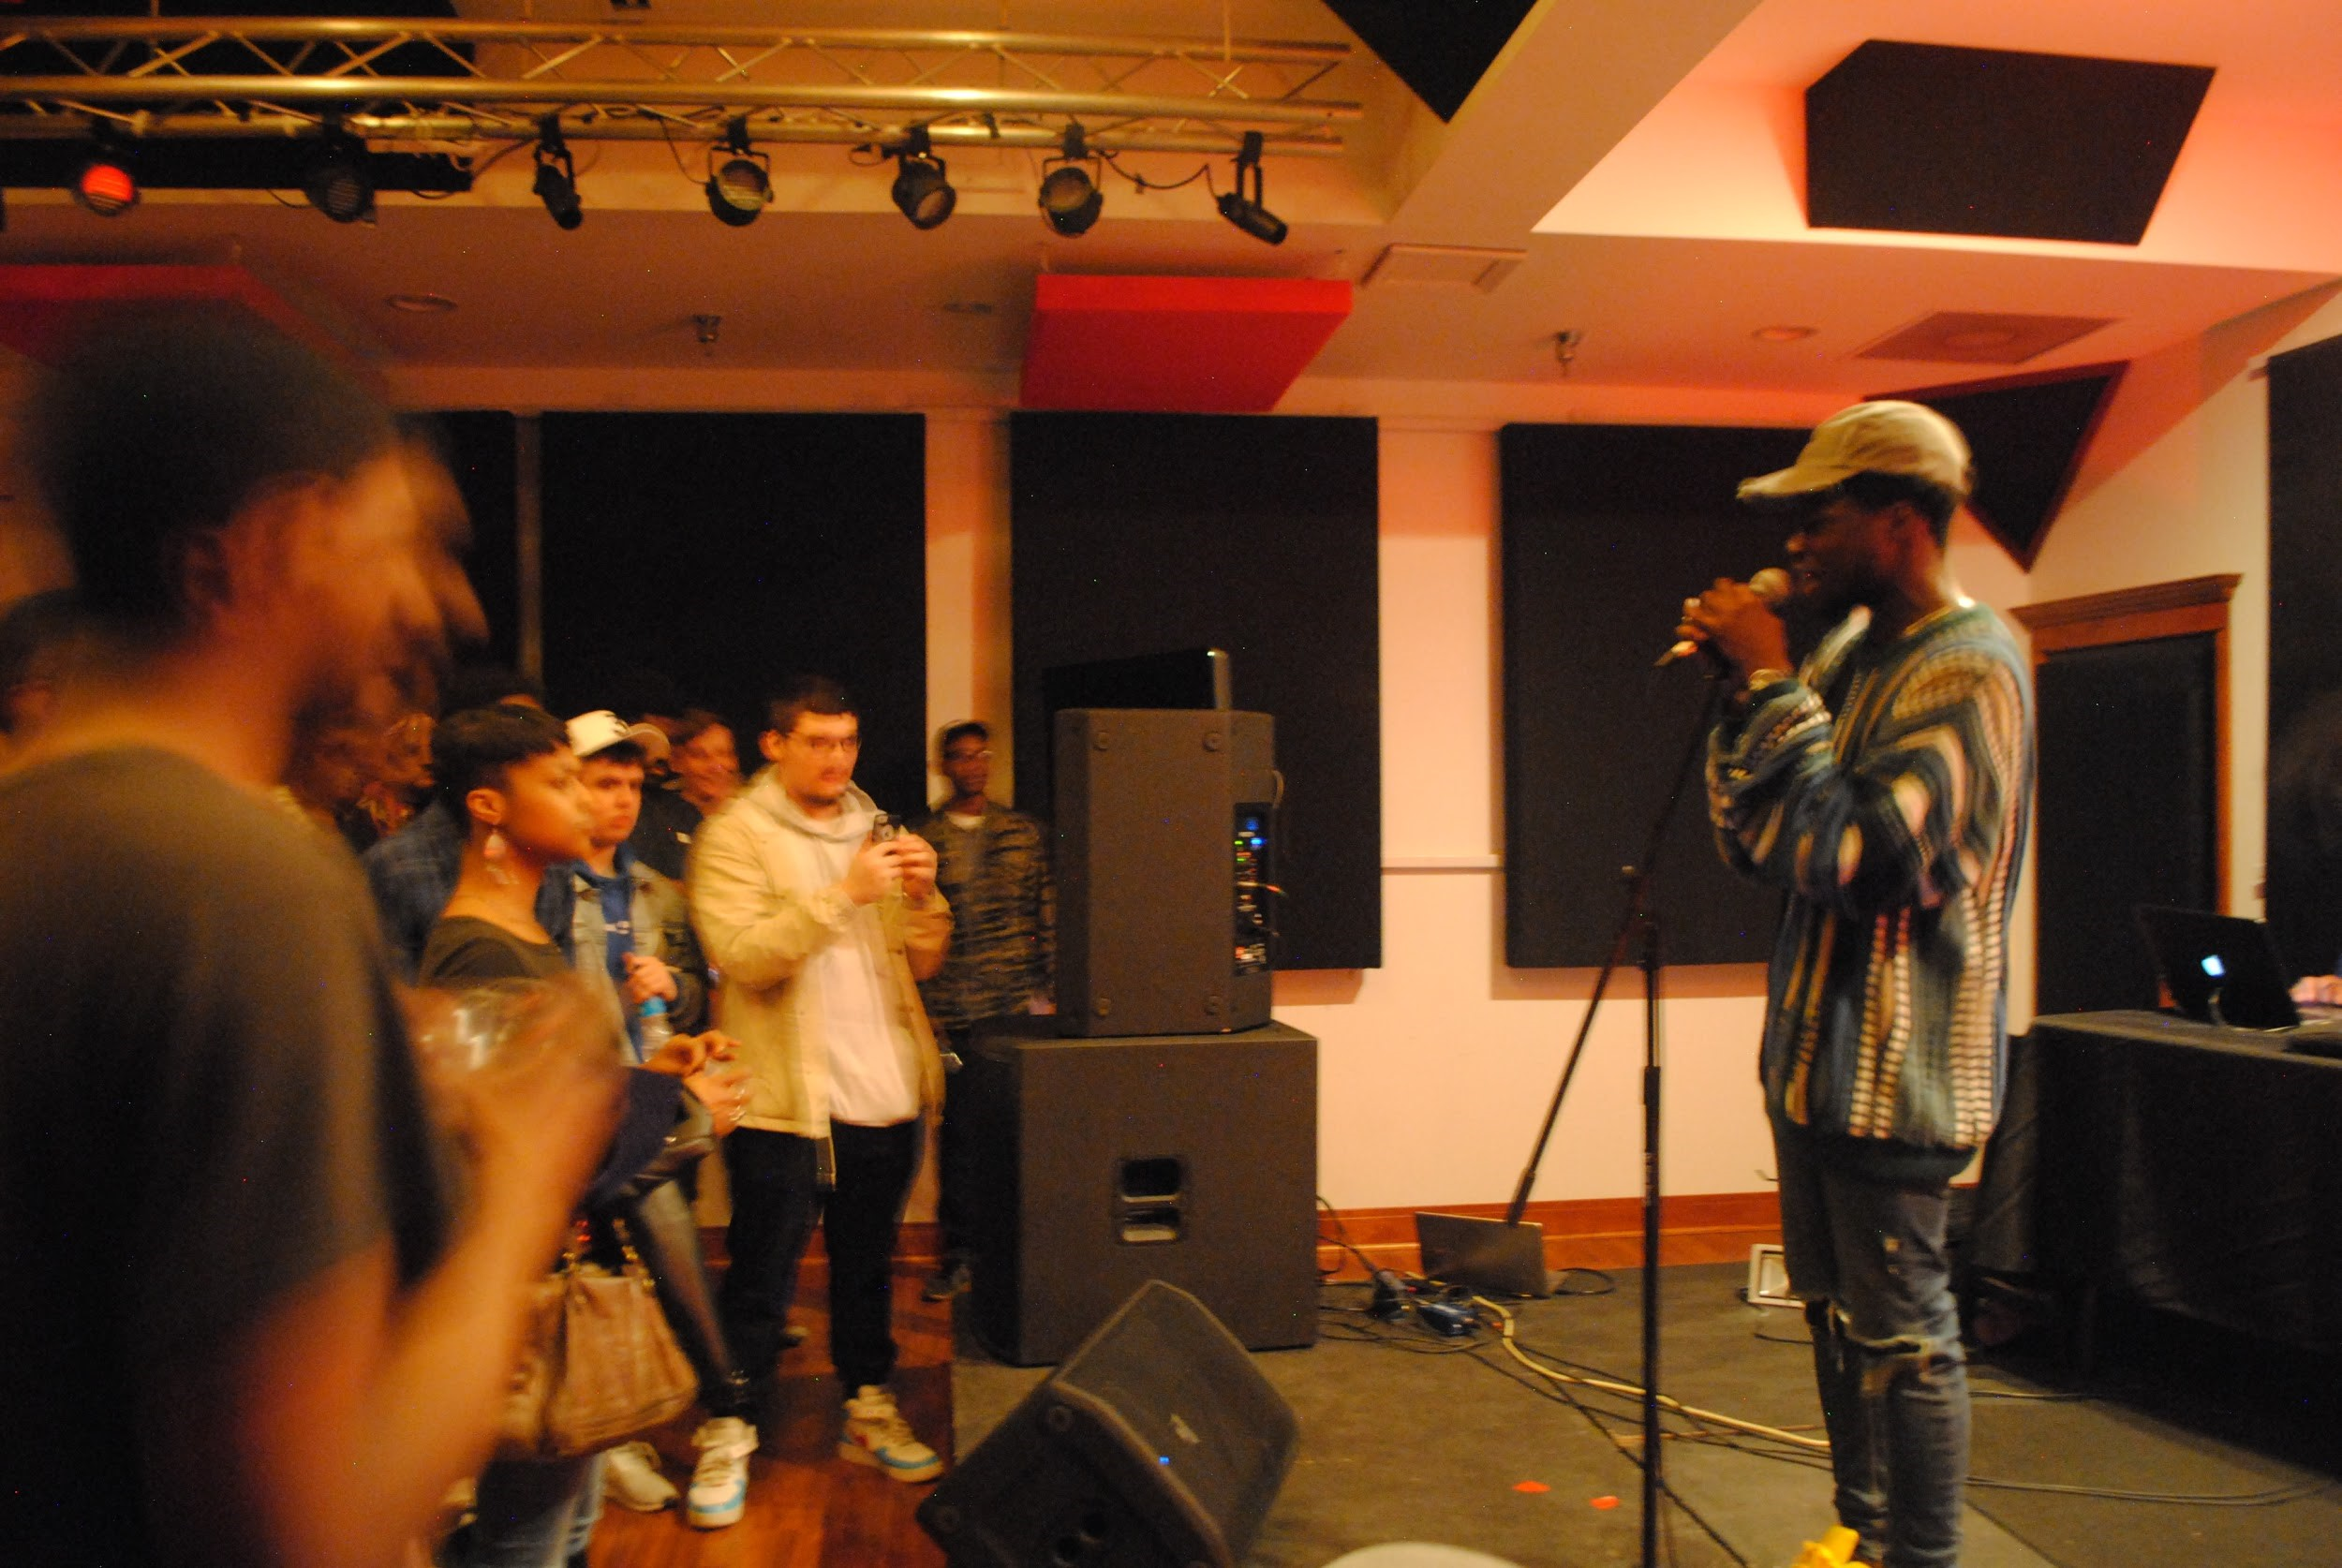 Femdot speaking to the crowd at Icon Pro Studios. (Alexandra Amendola, 14 East Magazine)